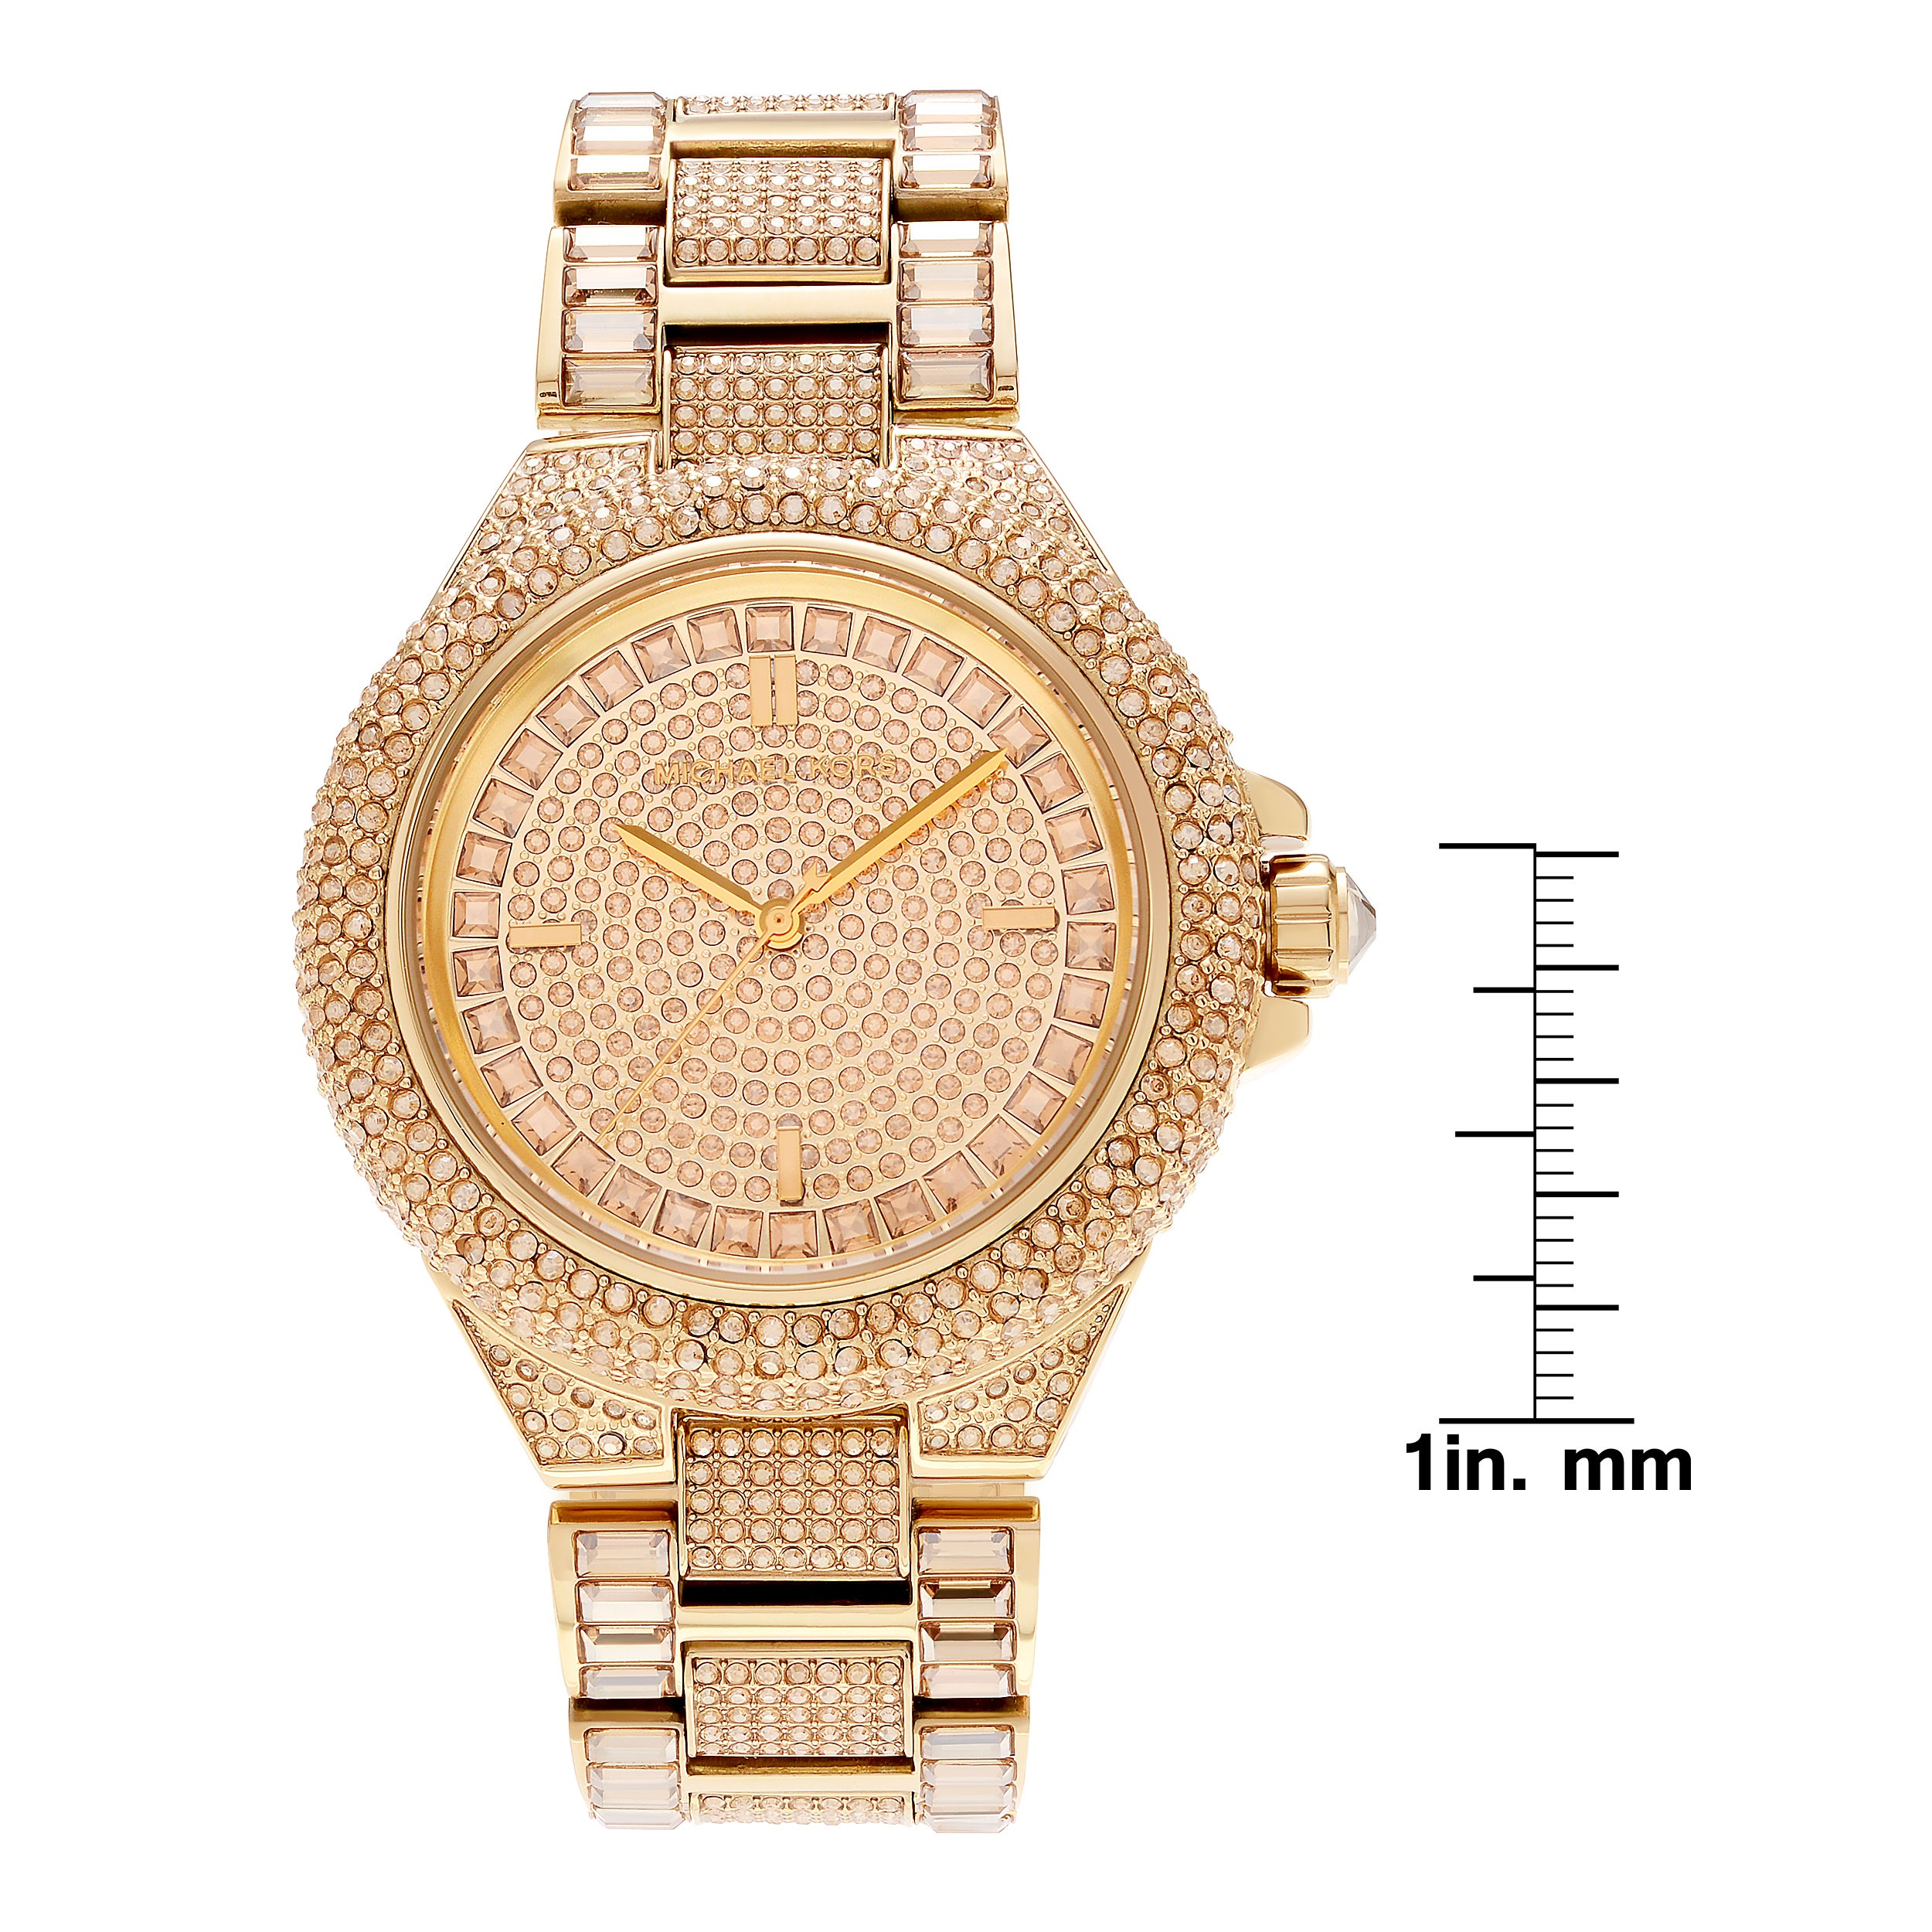 5e3036bd1b18 Shop Michael Kors Women's MK5720 'Camille' Gold-tone Pave Crystal Glam  Watch - Gold - Free Shipping Today - Overstock - 16306367